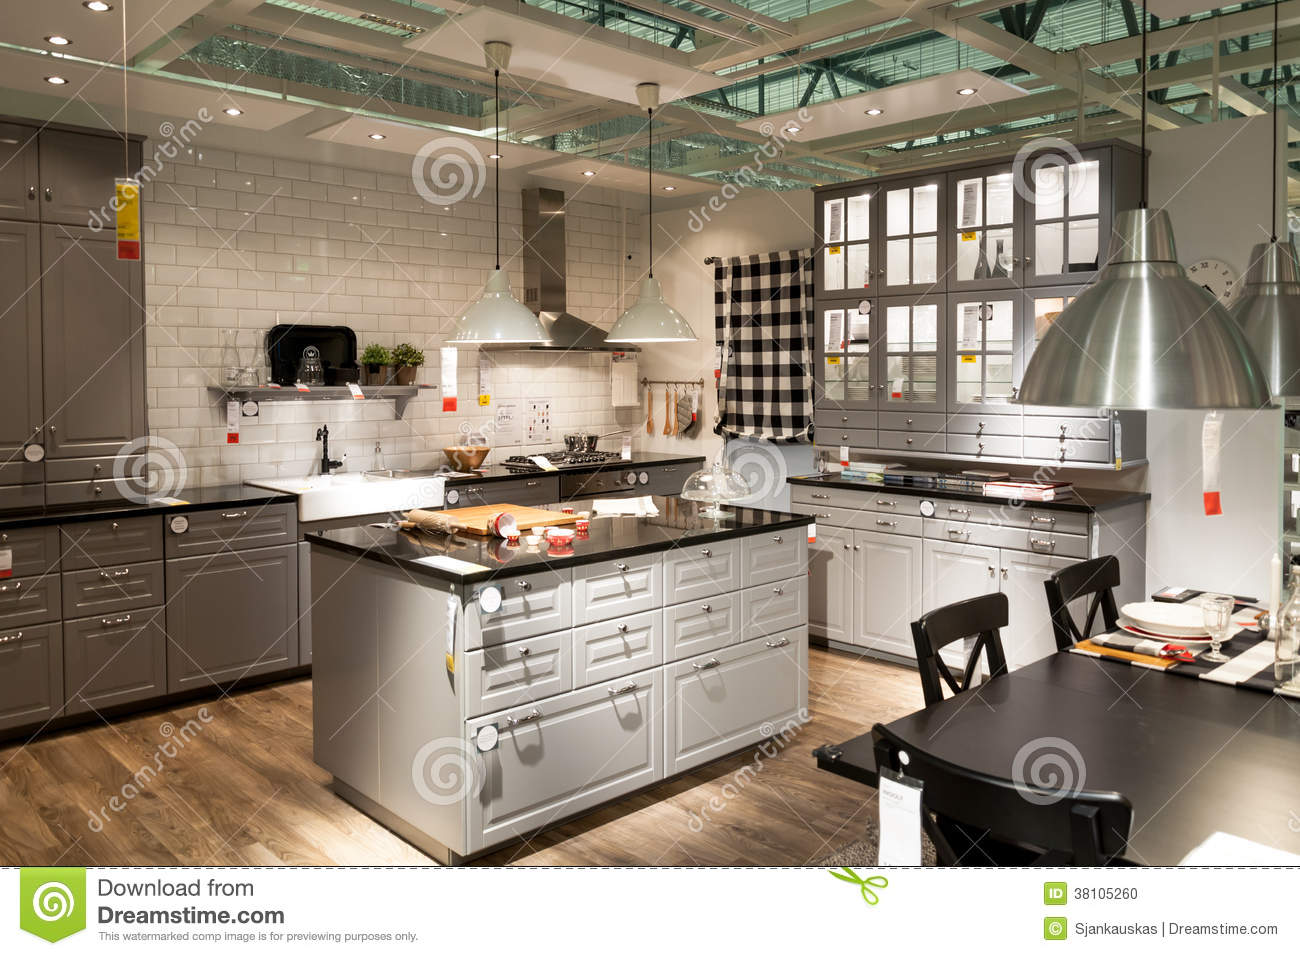 kitchen in furniture store ikea editorial image image